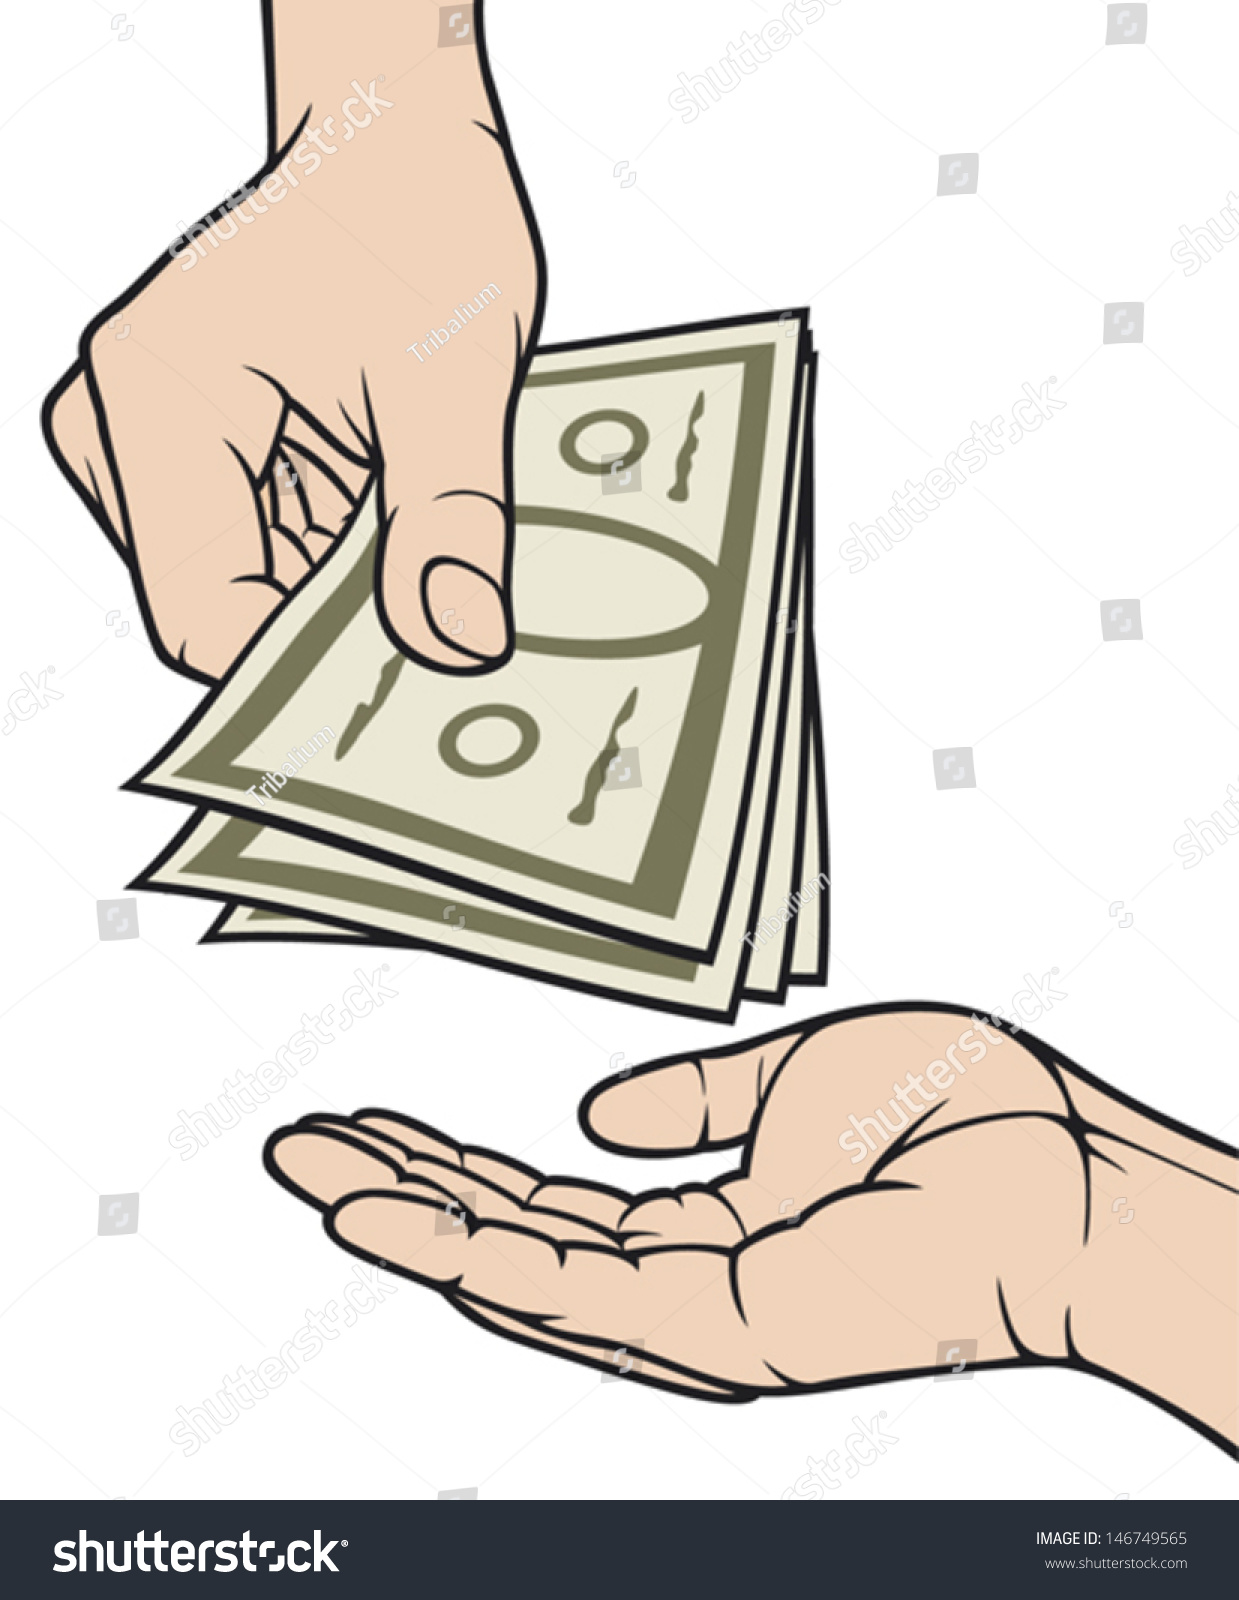 Hands Giving And Receiving Money Stock Vector Illustration